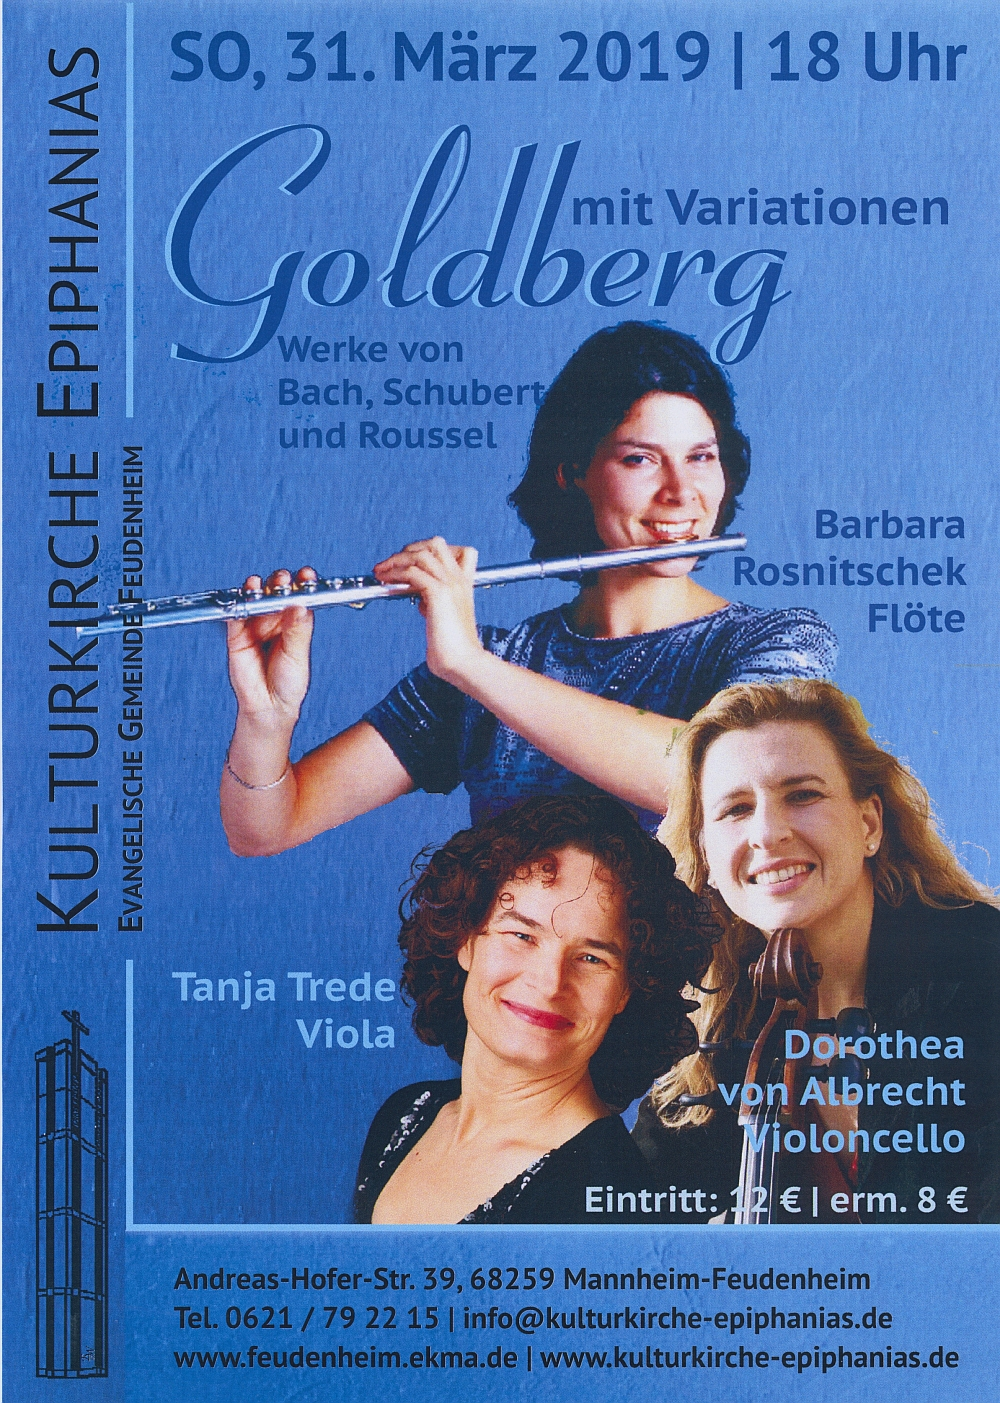 Goldberg mit Variationen